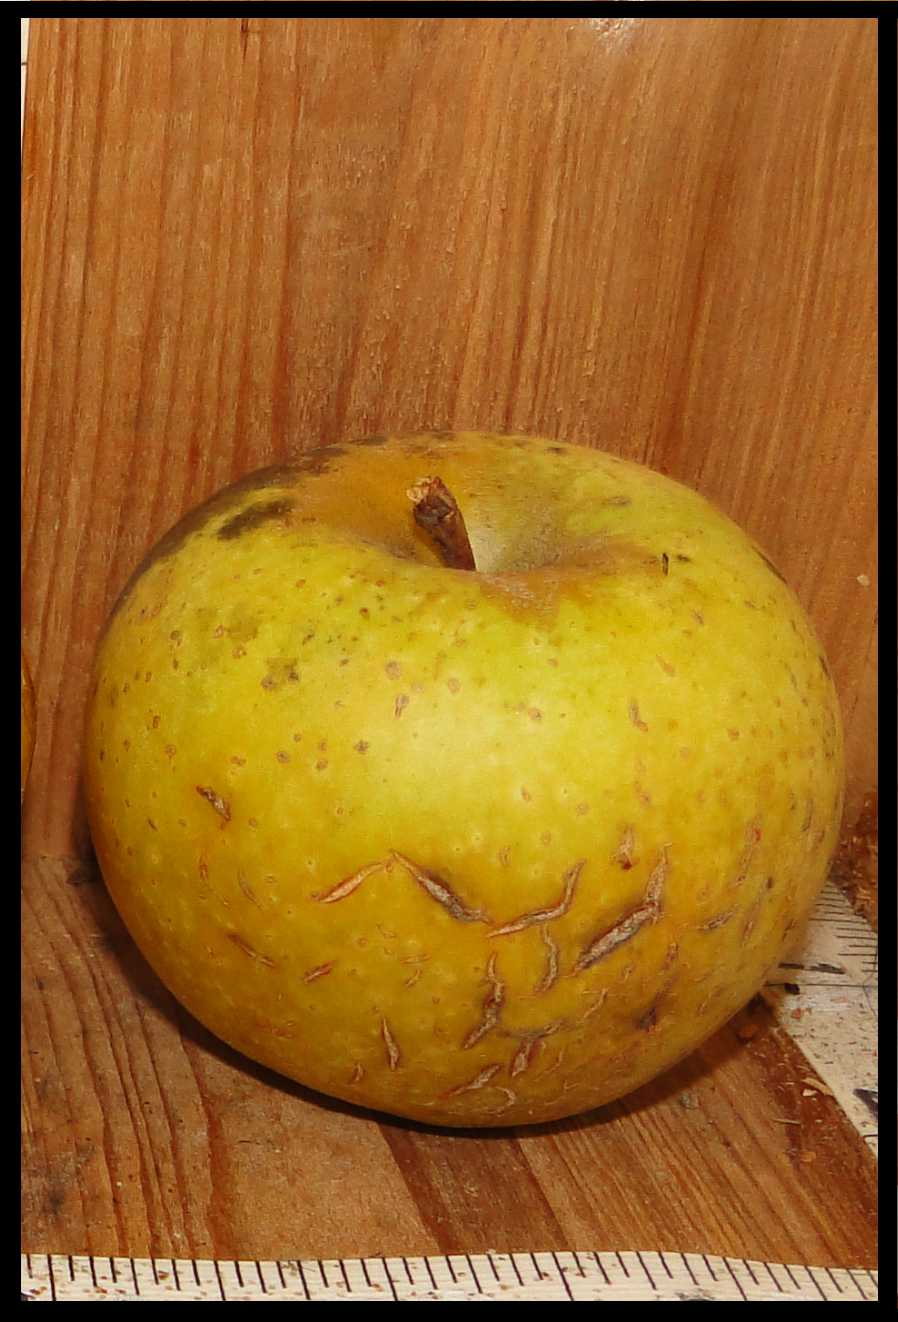 greenish brown apple with tan dots, rough tan skin near stem, and cracks in the skin